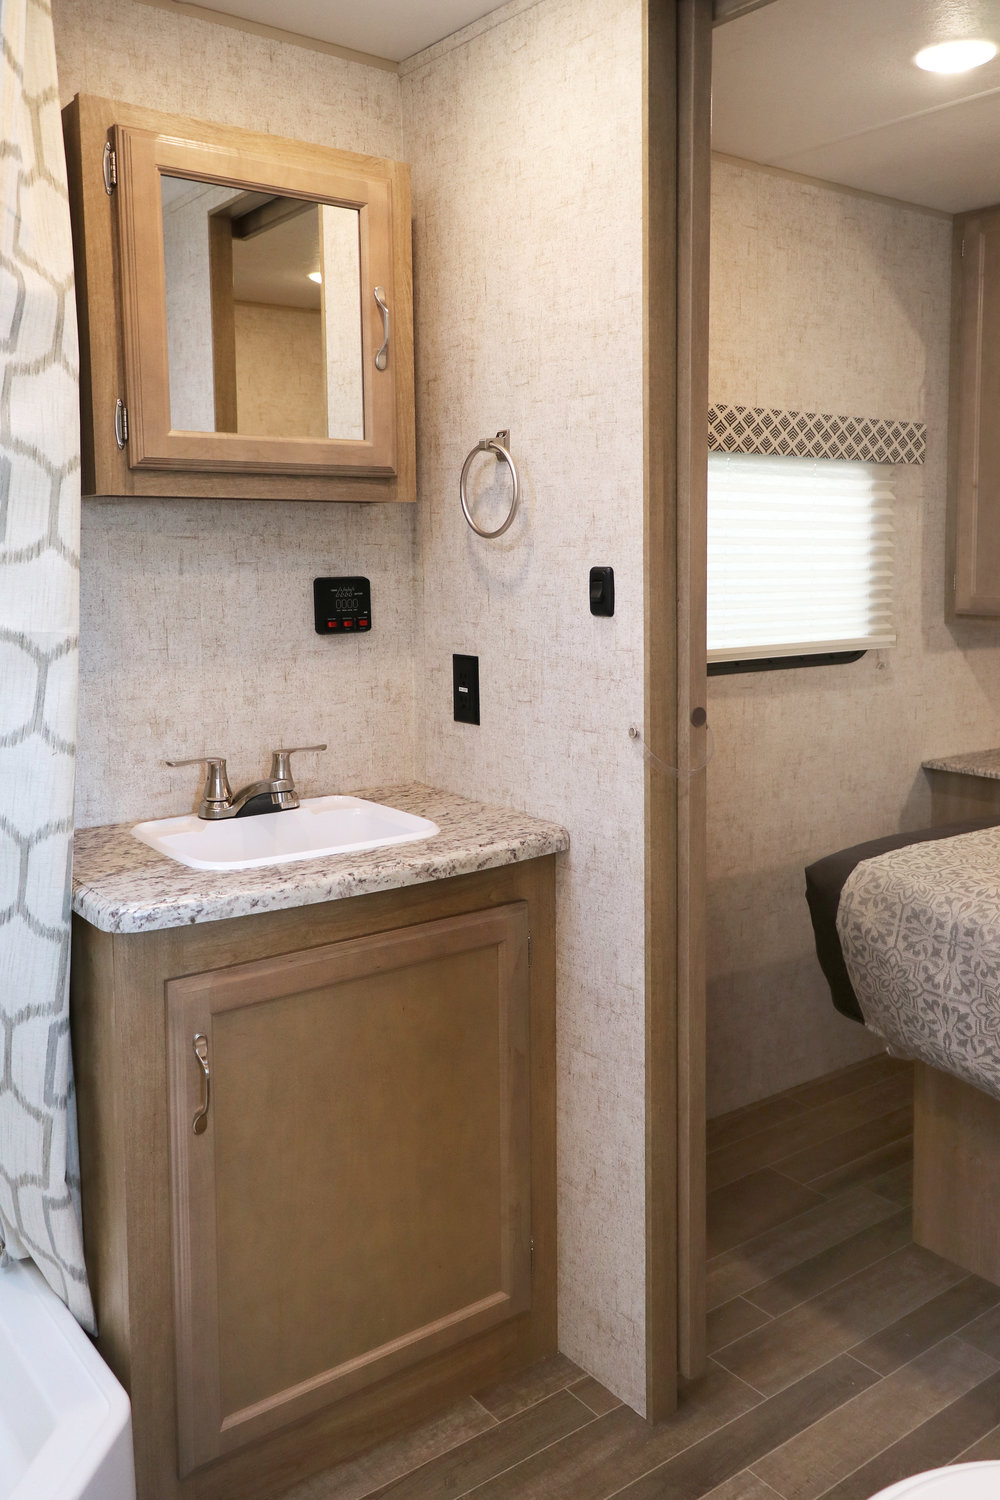 24 RLS Bathroom Vanity and Sink.jpg